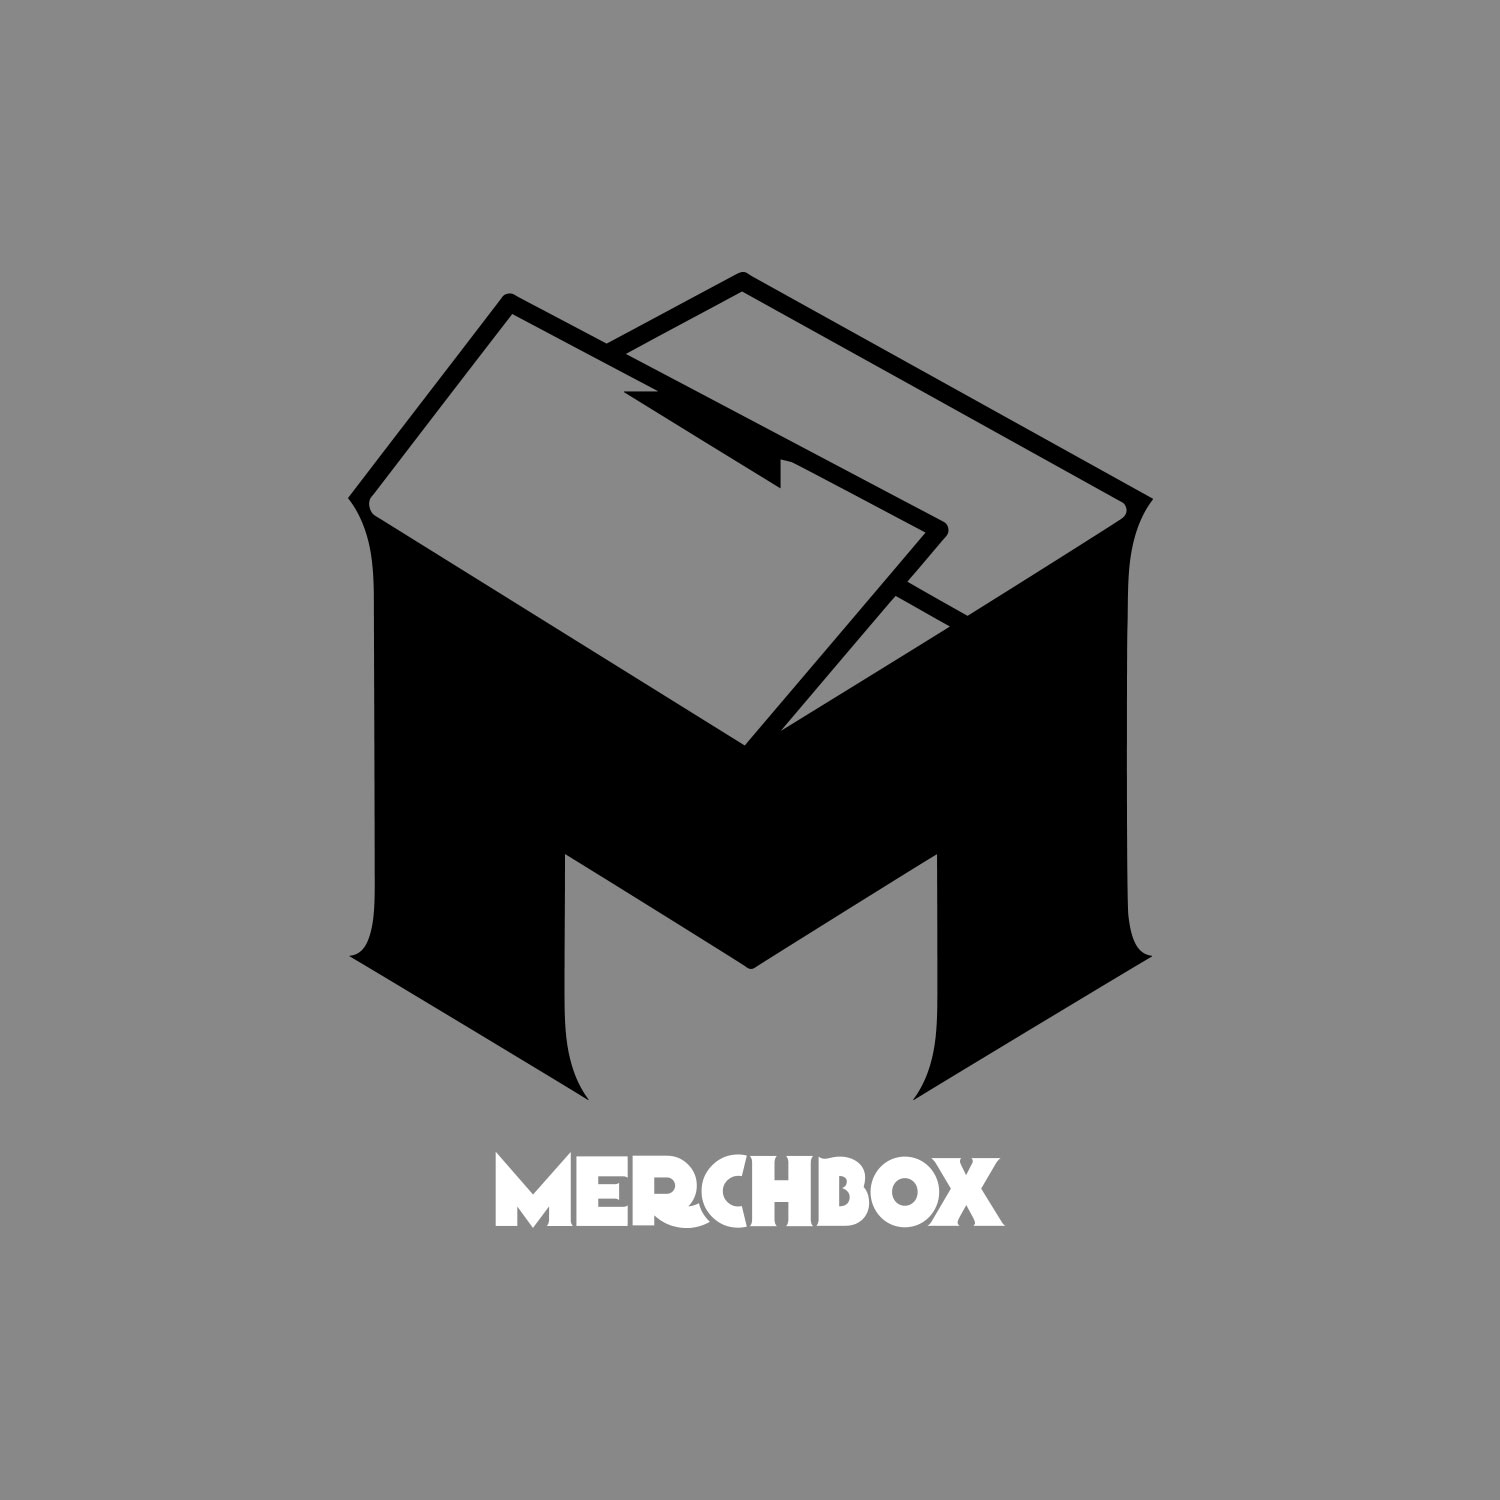 MerchBox was a comprehensive inventory management, show scheduling, sales tracking and sales analysis app in the App Store specifically tailored to bands and performing artists.